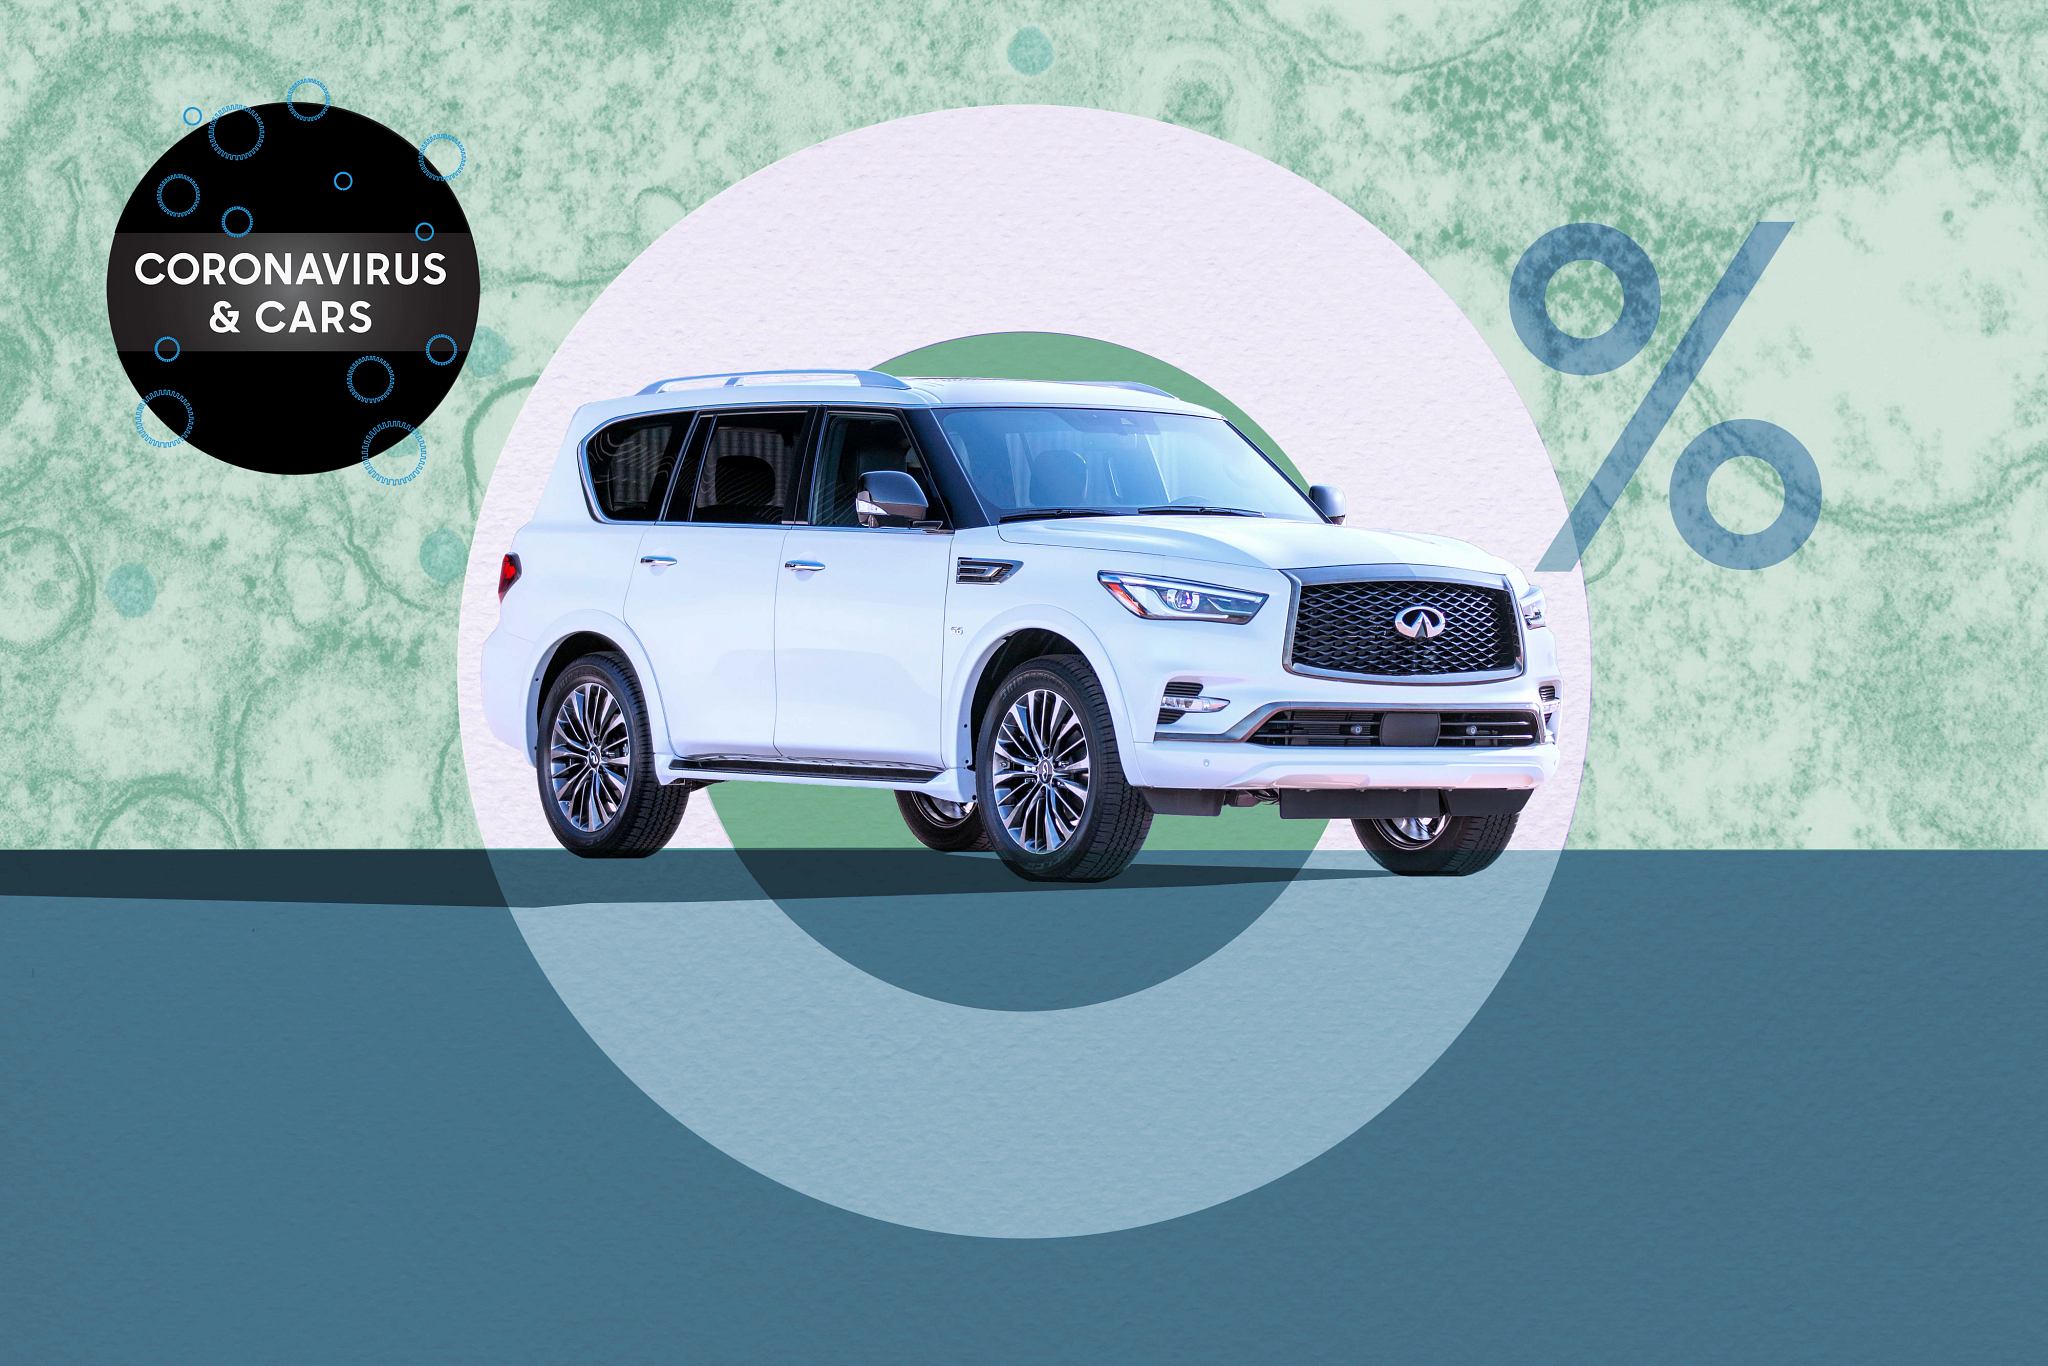 3 Infiniti Models With 0% Financing Worth Considering